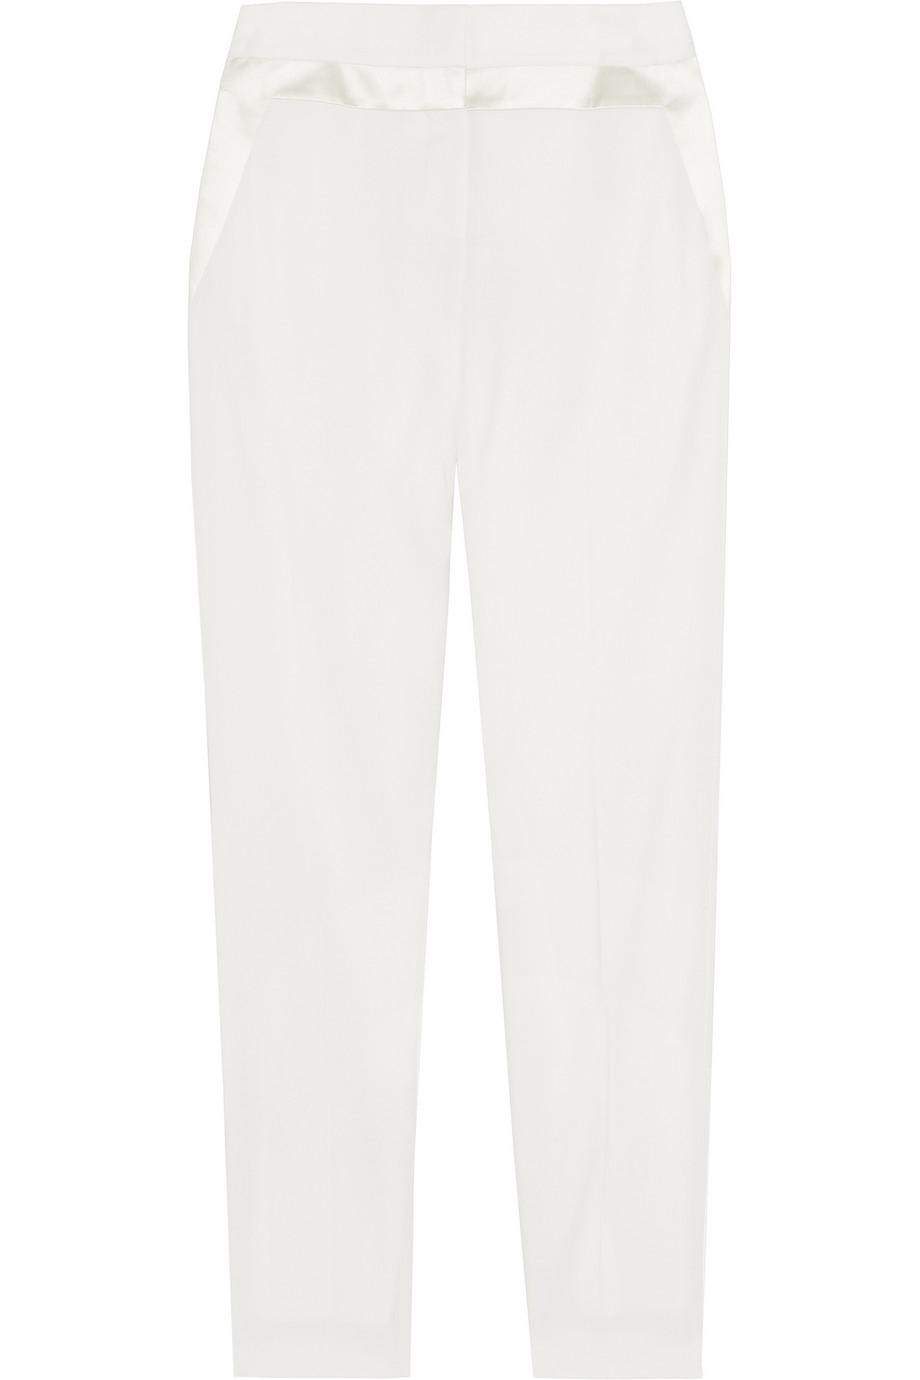 Cropped wool-twill pants | Alexander Wang | 88% off | THE OUTNET